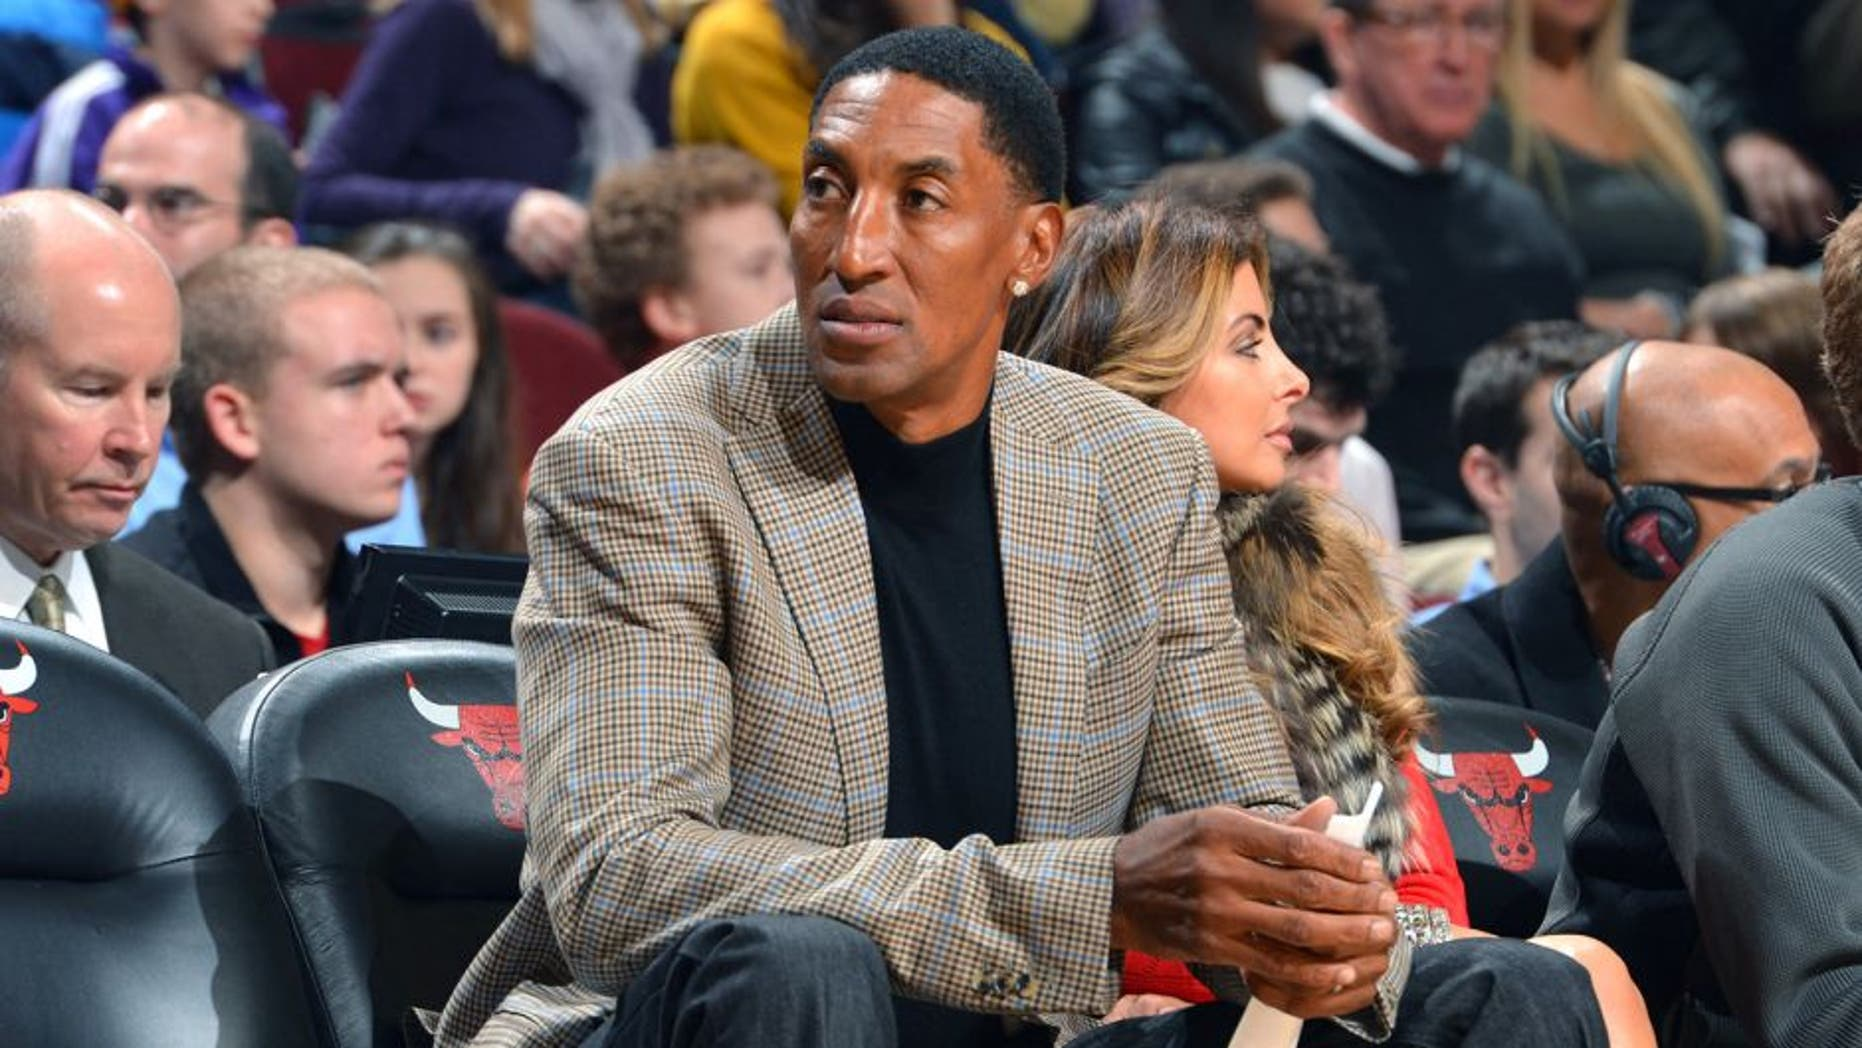 CHICAGO, IL - JANUARY 20: NBA Legend Scottie Pippen in attendance for the game between the Chicago Bulls and the Los Angeles Lakers on January 20, 2014 at the United Center in Chicago, Illinois. NOTE TO USER: User expressly acknowledges and agrees that, by downloading and/or using this photograph, user is consenting to the terms and conditions of the Getty Images License Agreement. Mandatory Copyright Notice: Copyright 2014 NBAE (Photo by Jesse D. Garrabrant/NBAE via Getty Images)